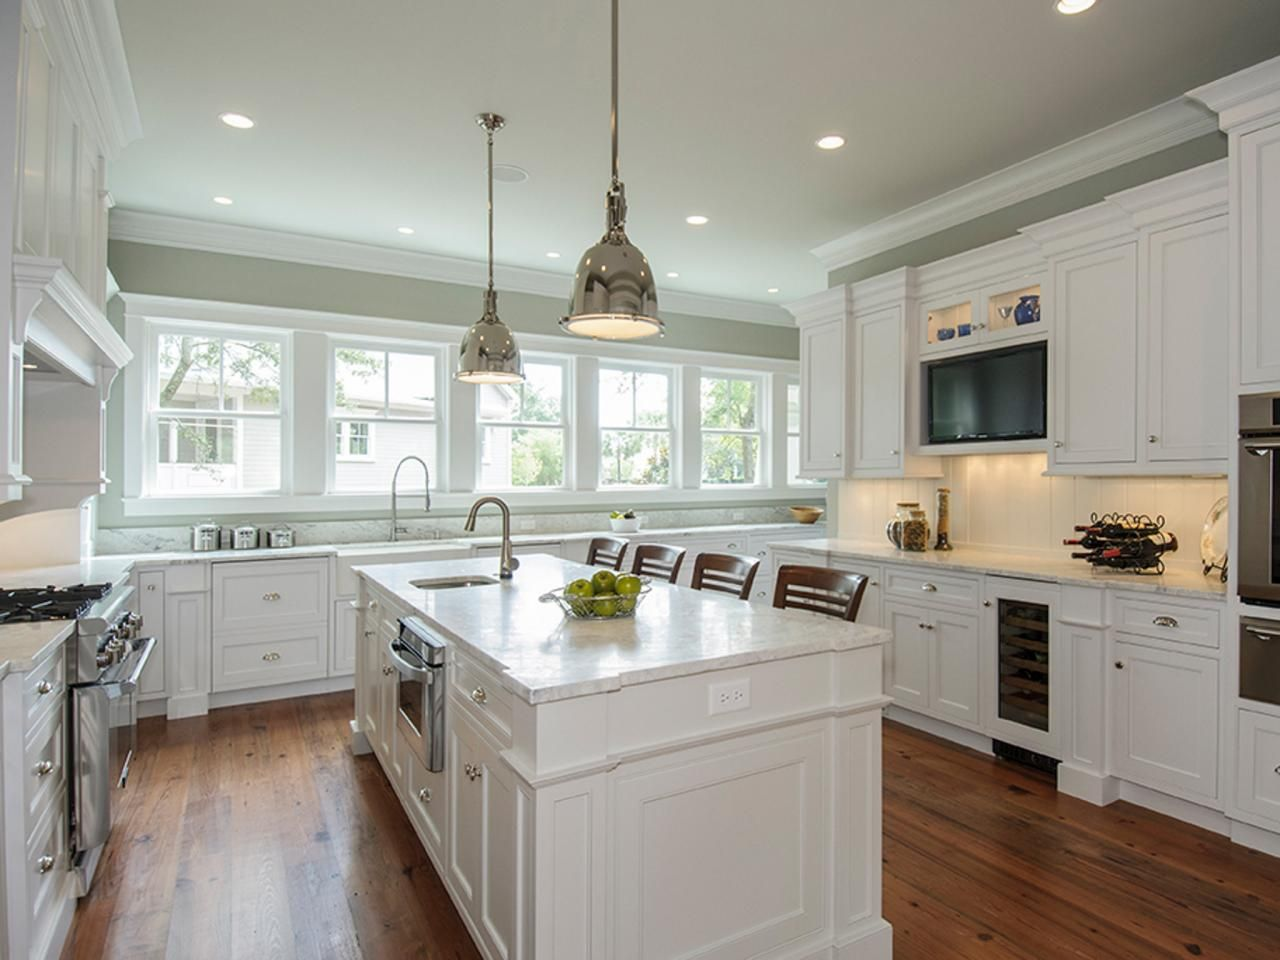 Warm Paint Colors For Kitchens Pictures Ideas From Hgtv: Painting Kitchen Cabinets Antique White: HGTV Pictures